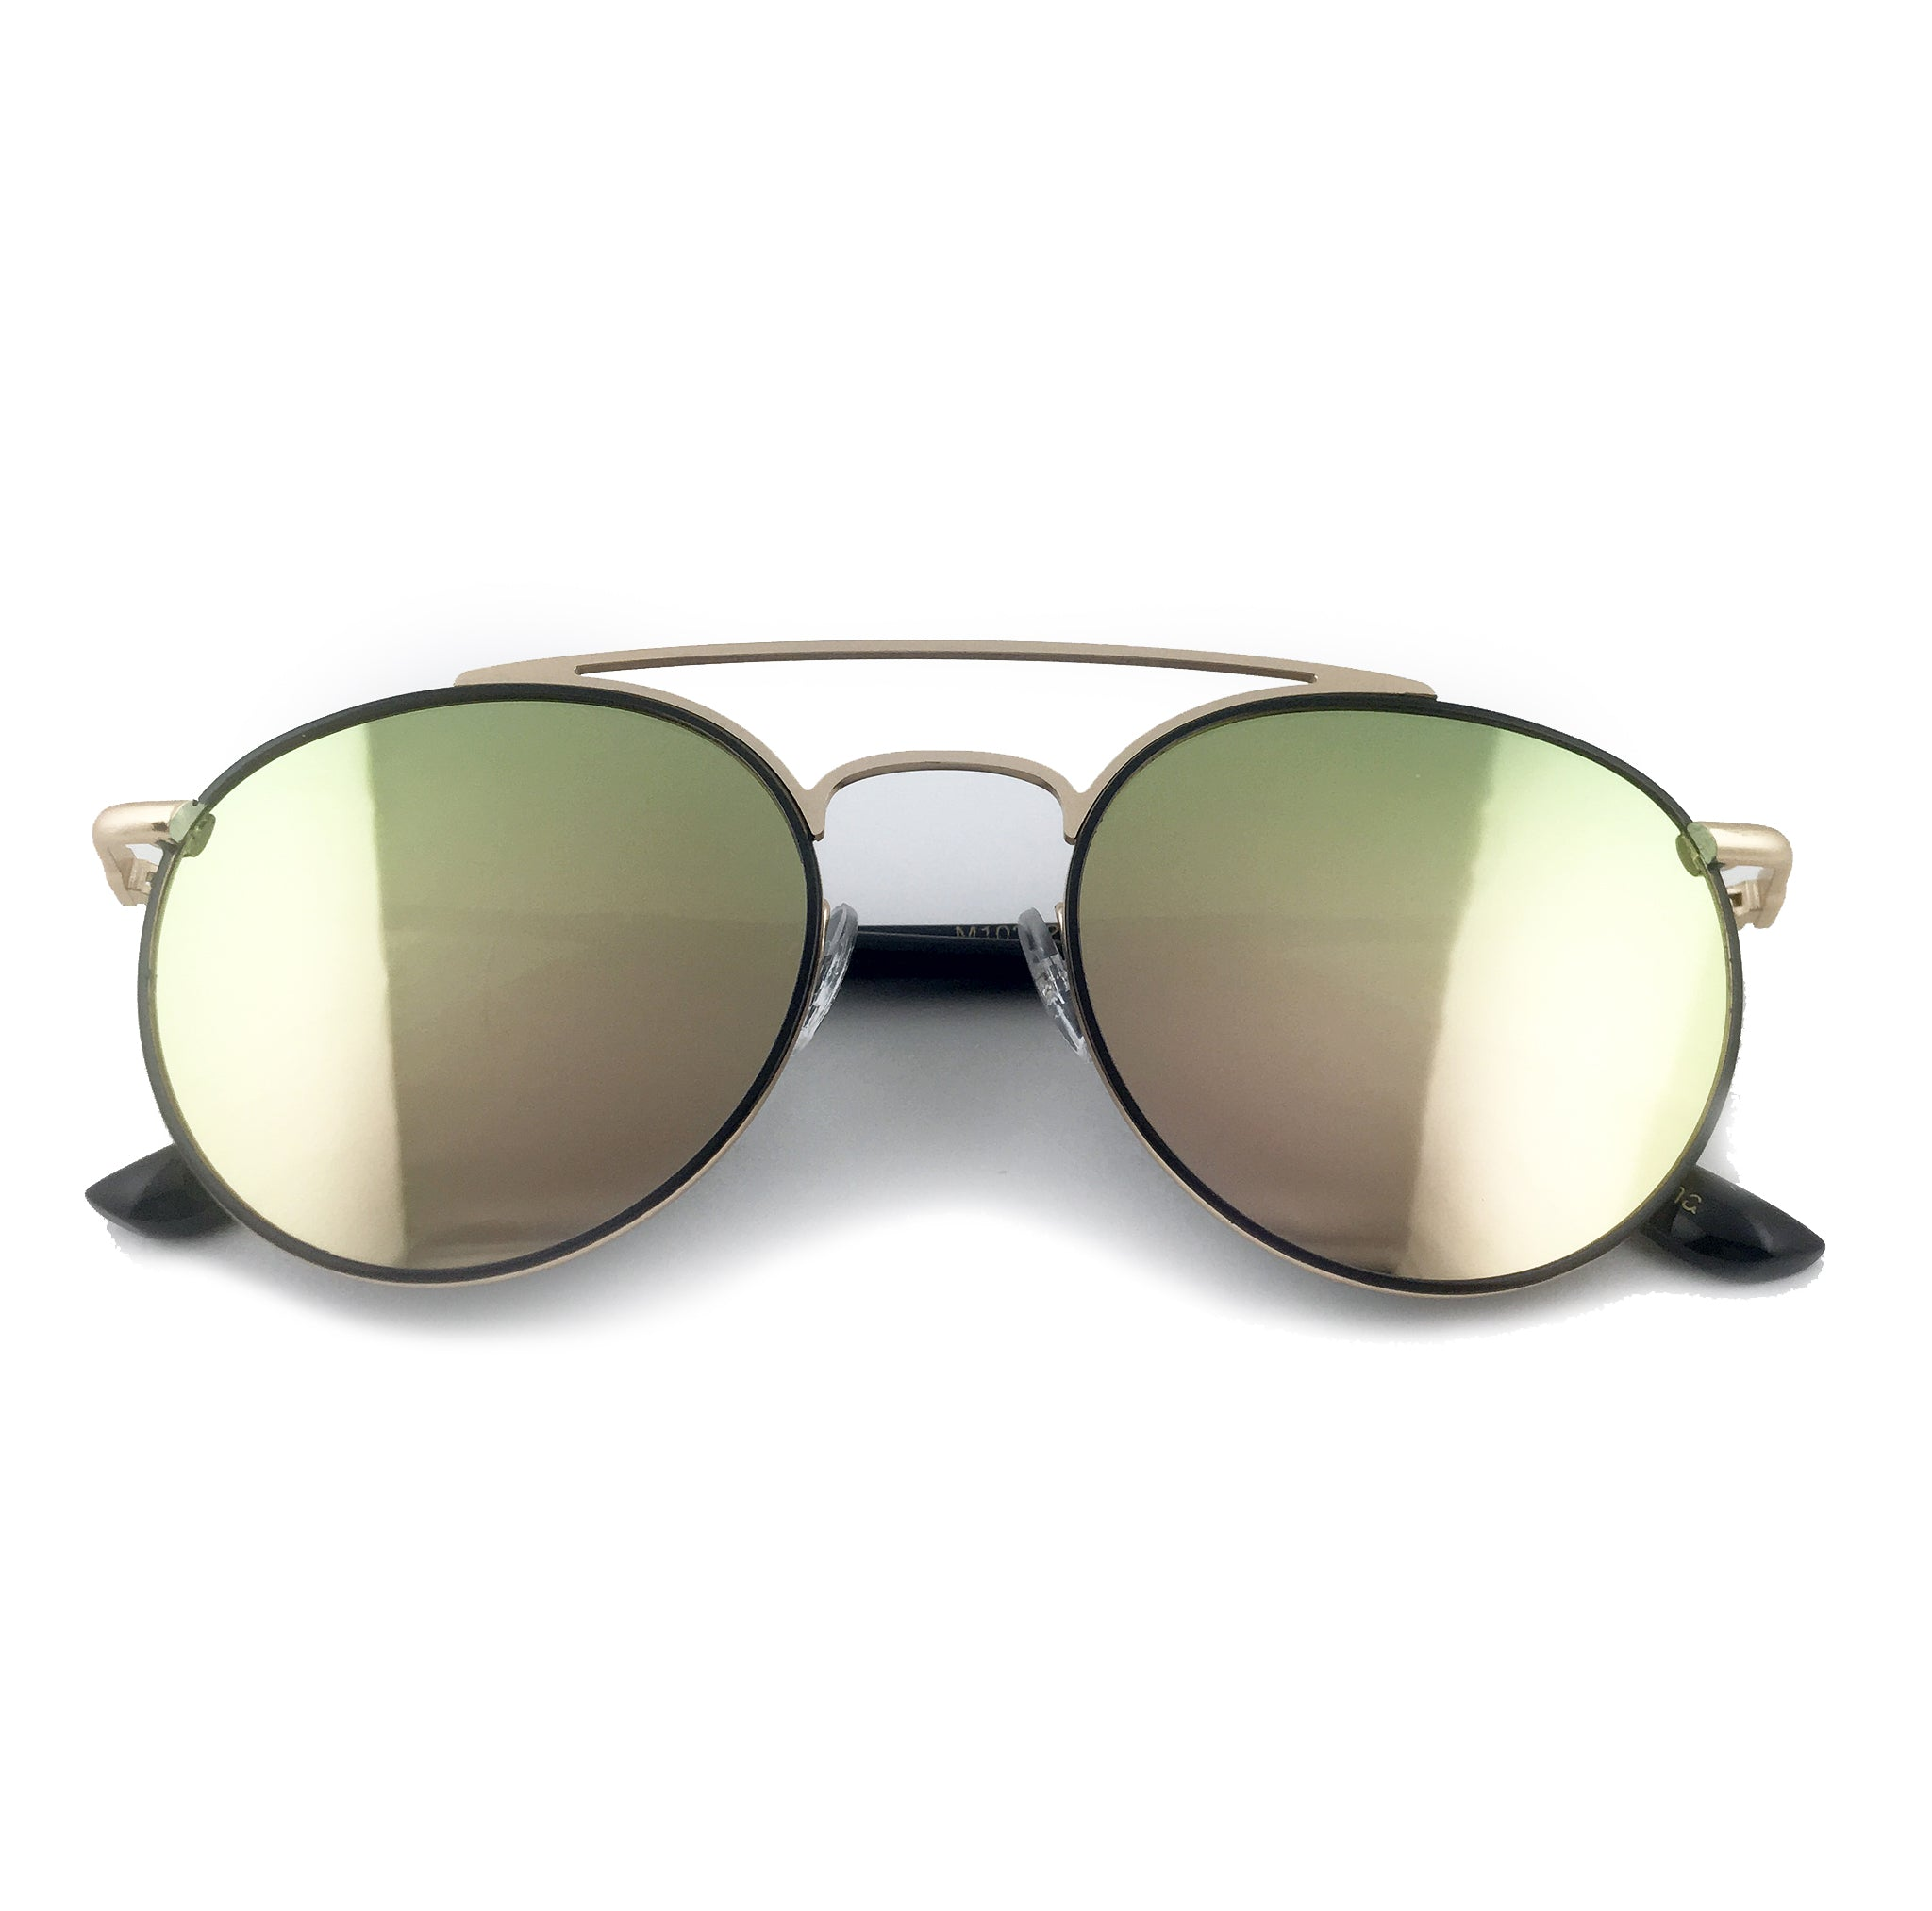 Green tinted round sunglasses with gold frame | The Perfect Gentleman